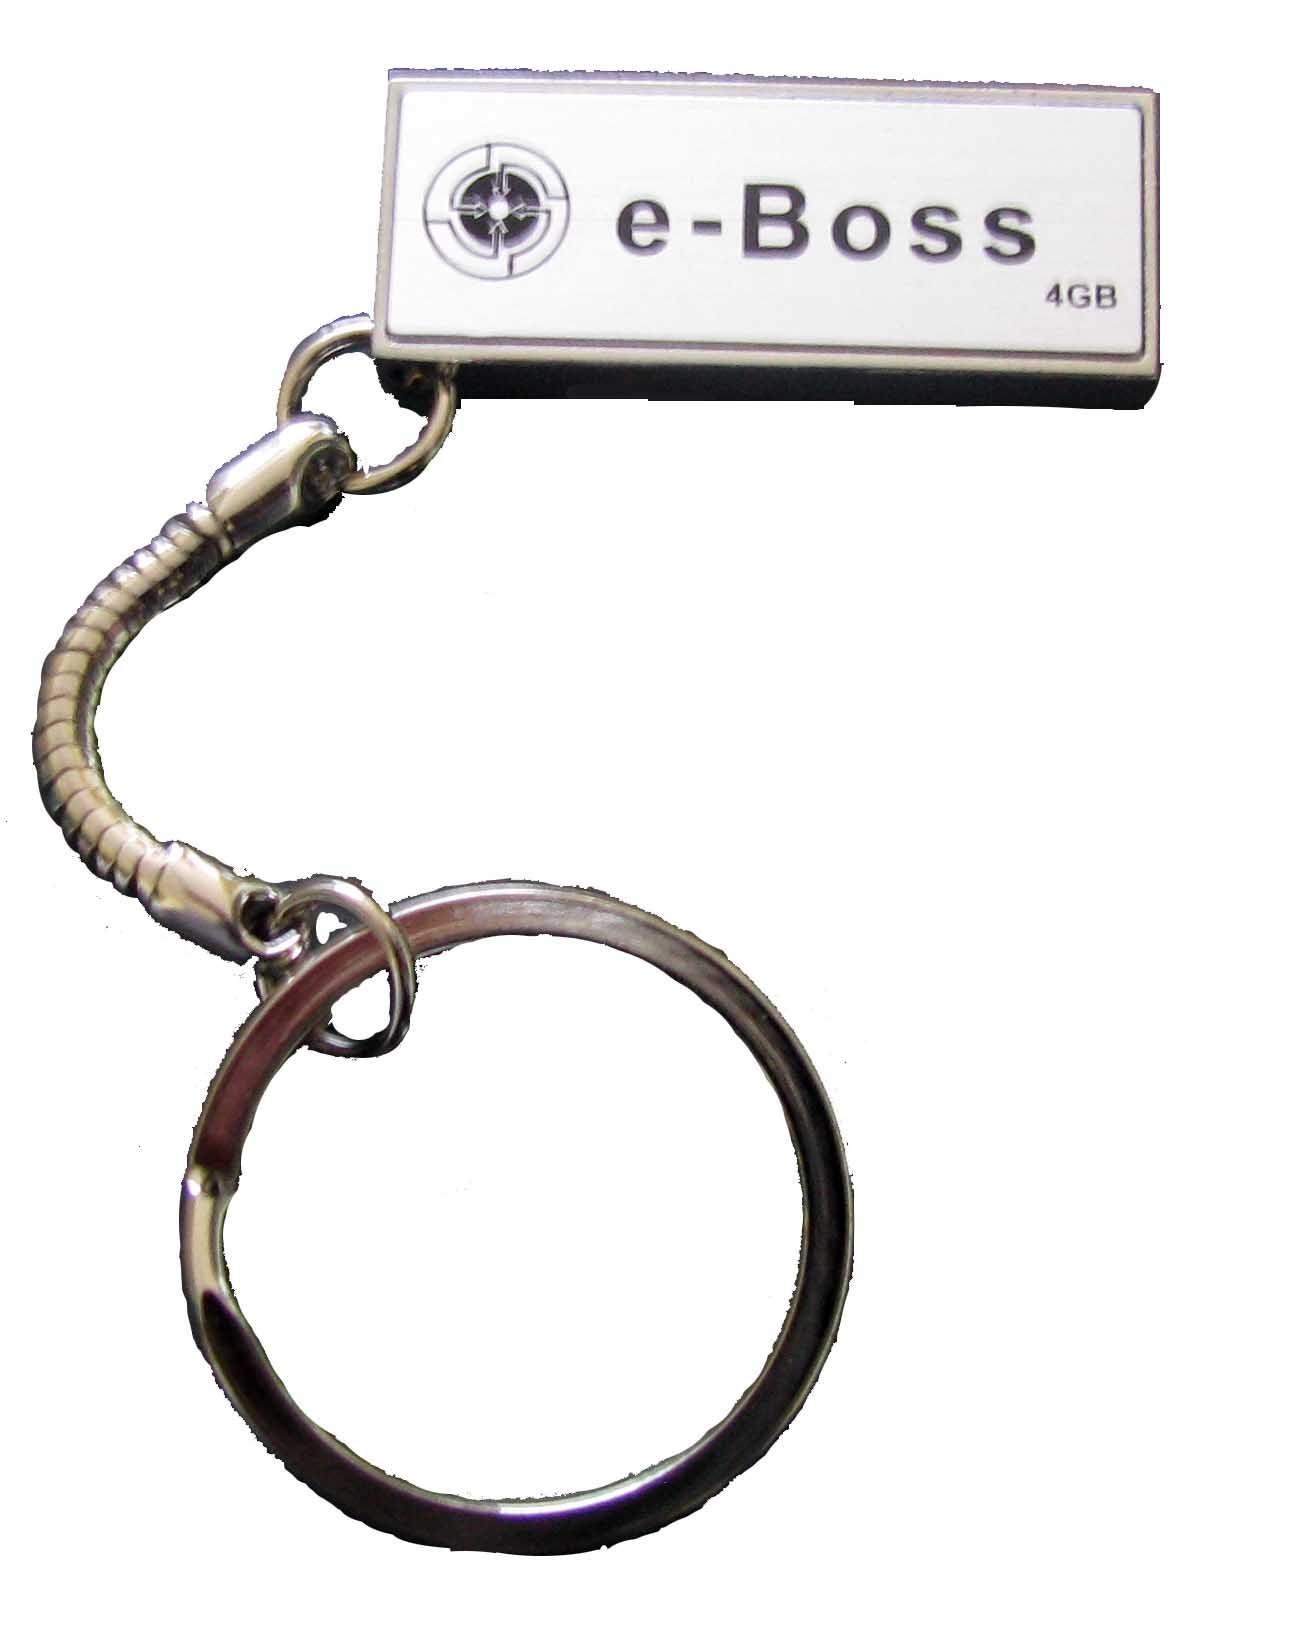 USB 2.0 Flash Disk ΜΙΝΙ Metal 4GB E-Boss